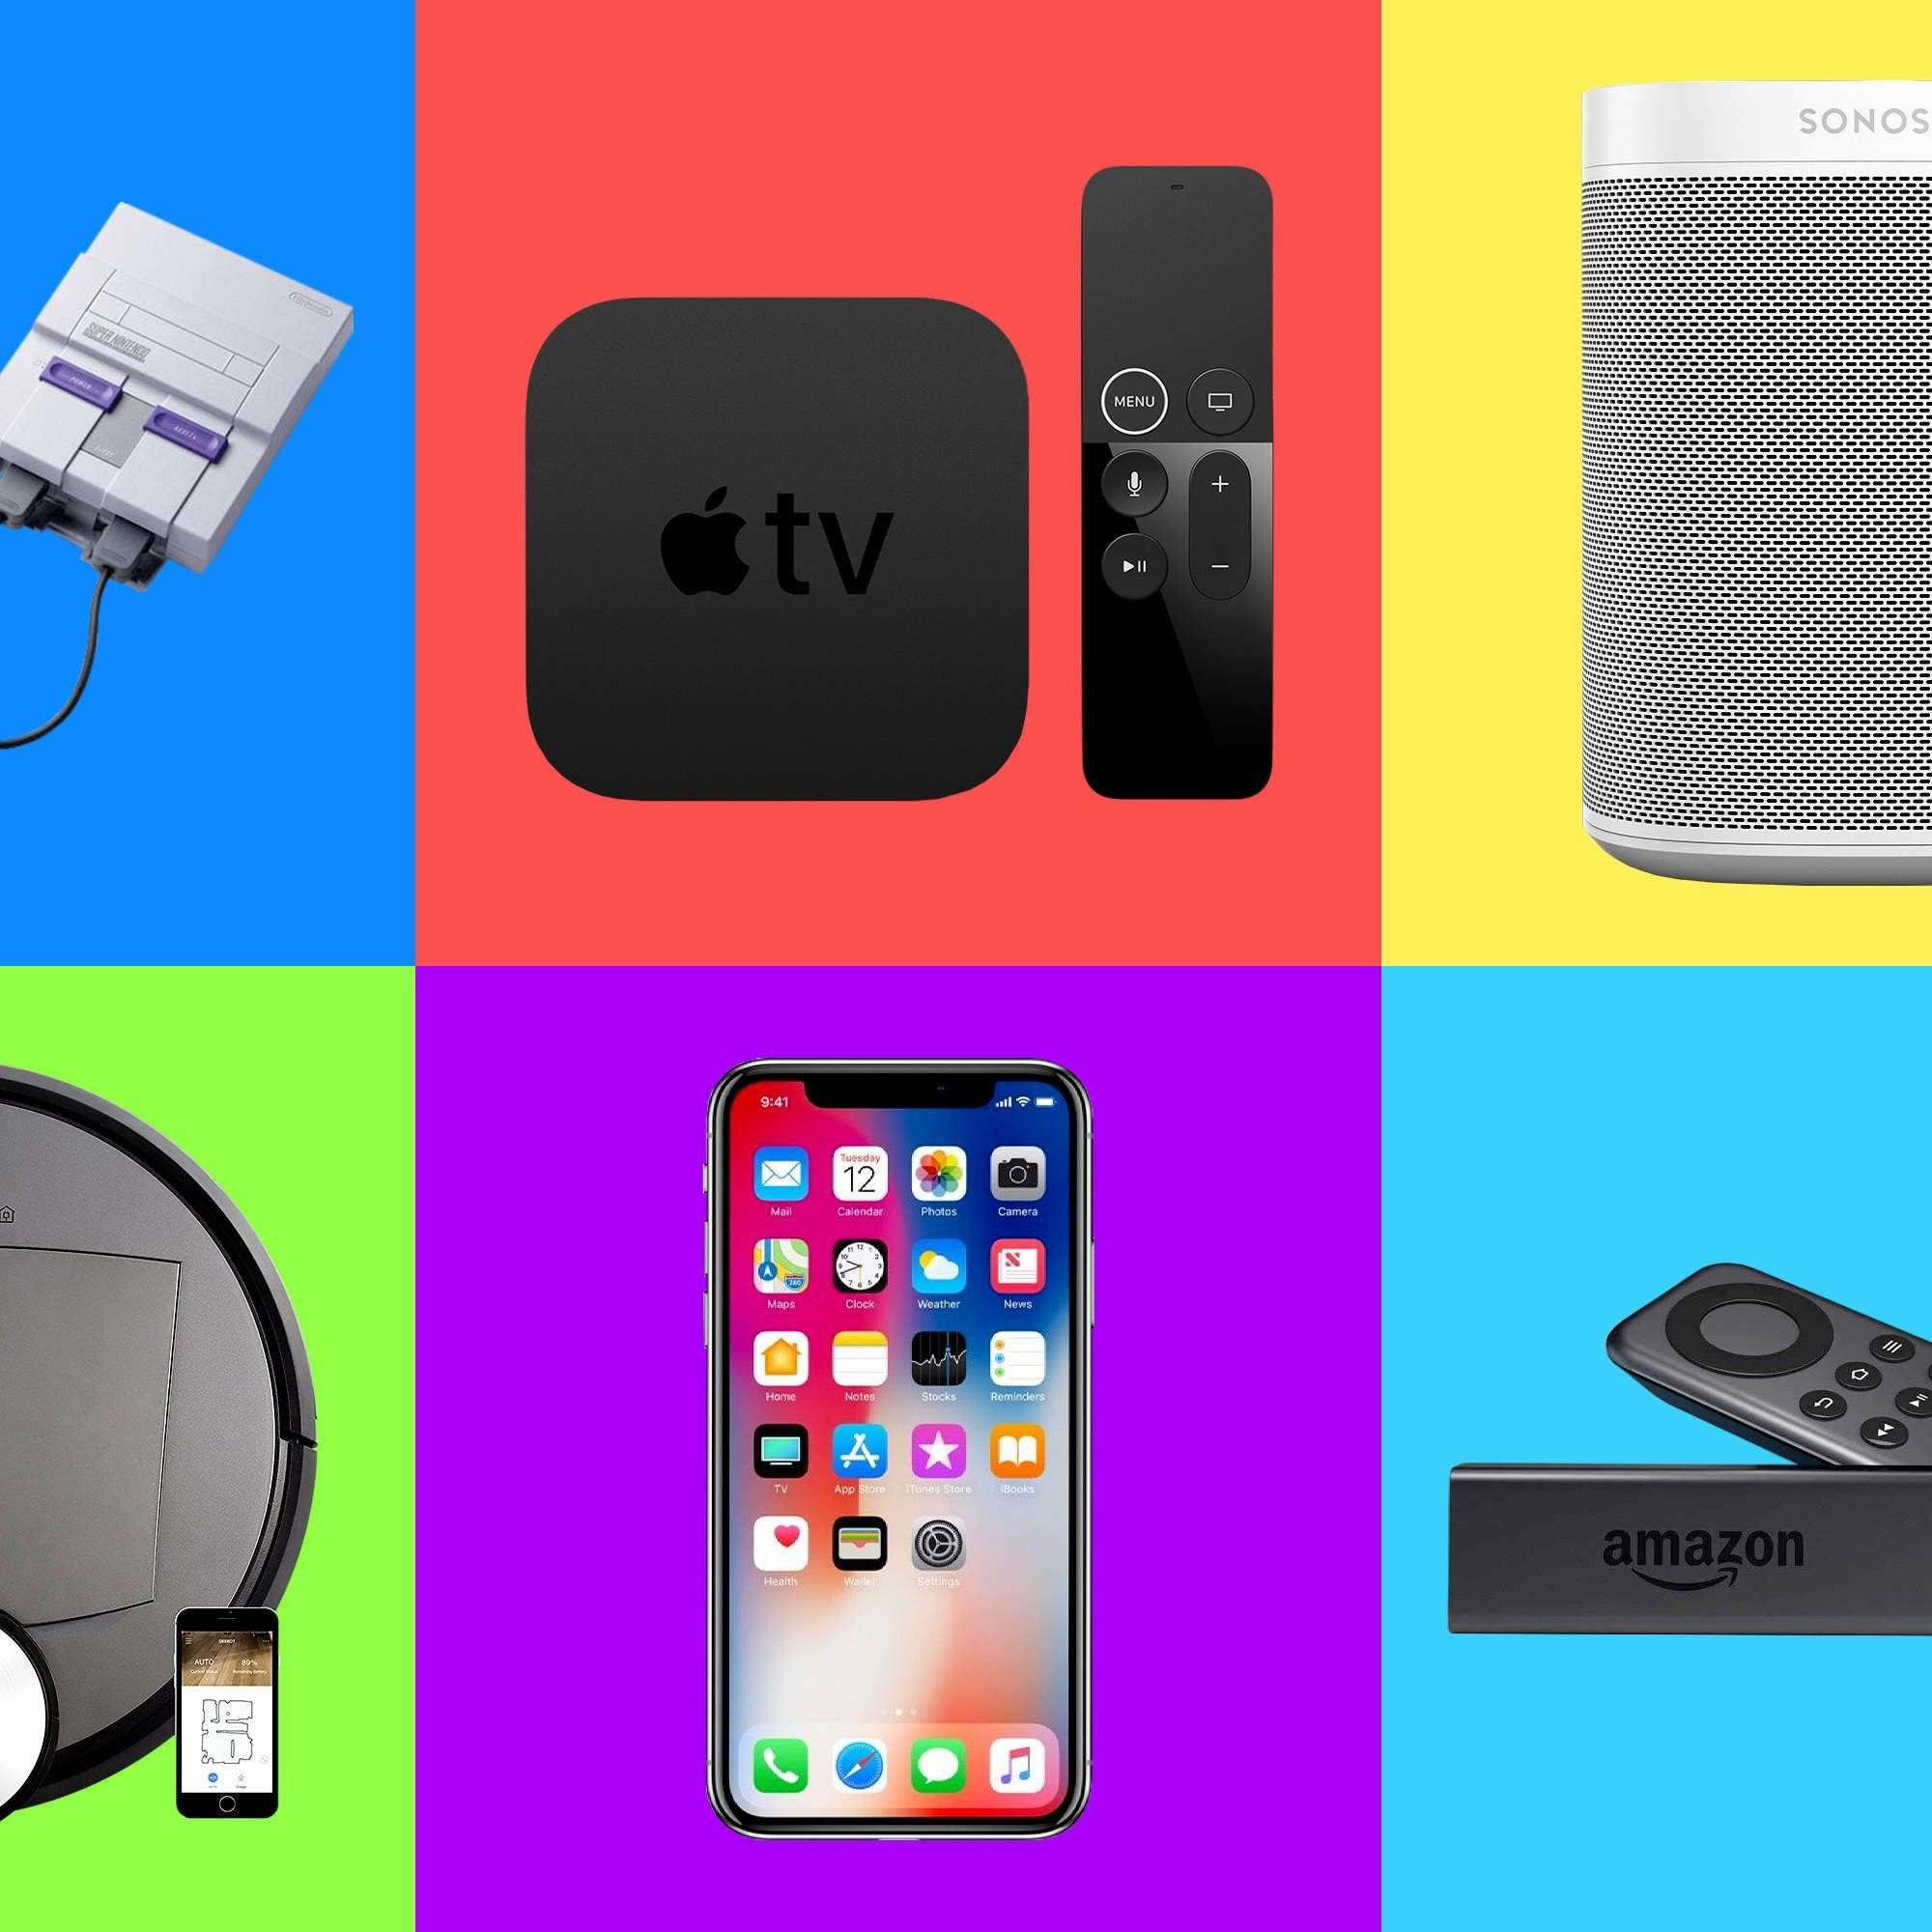 The 25 Best Tech Gifts to Buy This Holiday Season